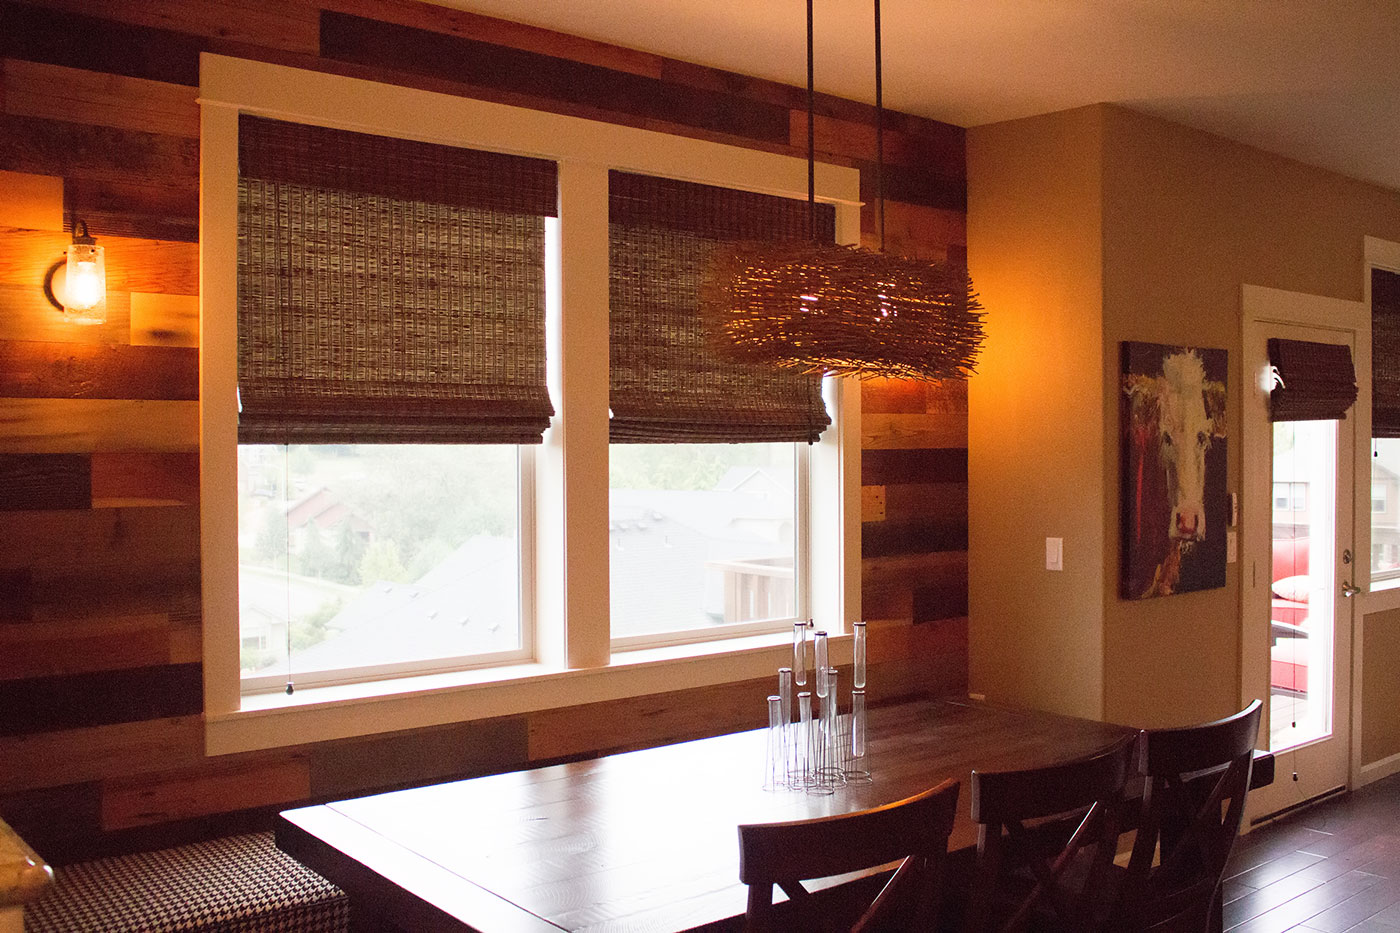 Custom lighting and barnwood detail in modern kitchen design. Rebecca Olsen Designs, Oregon